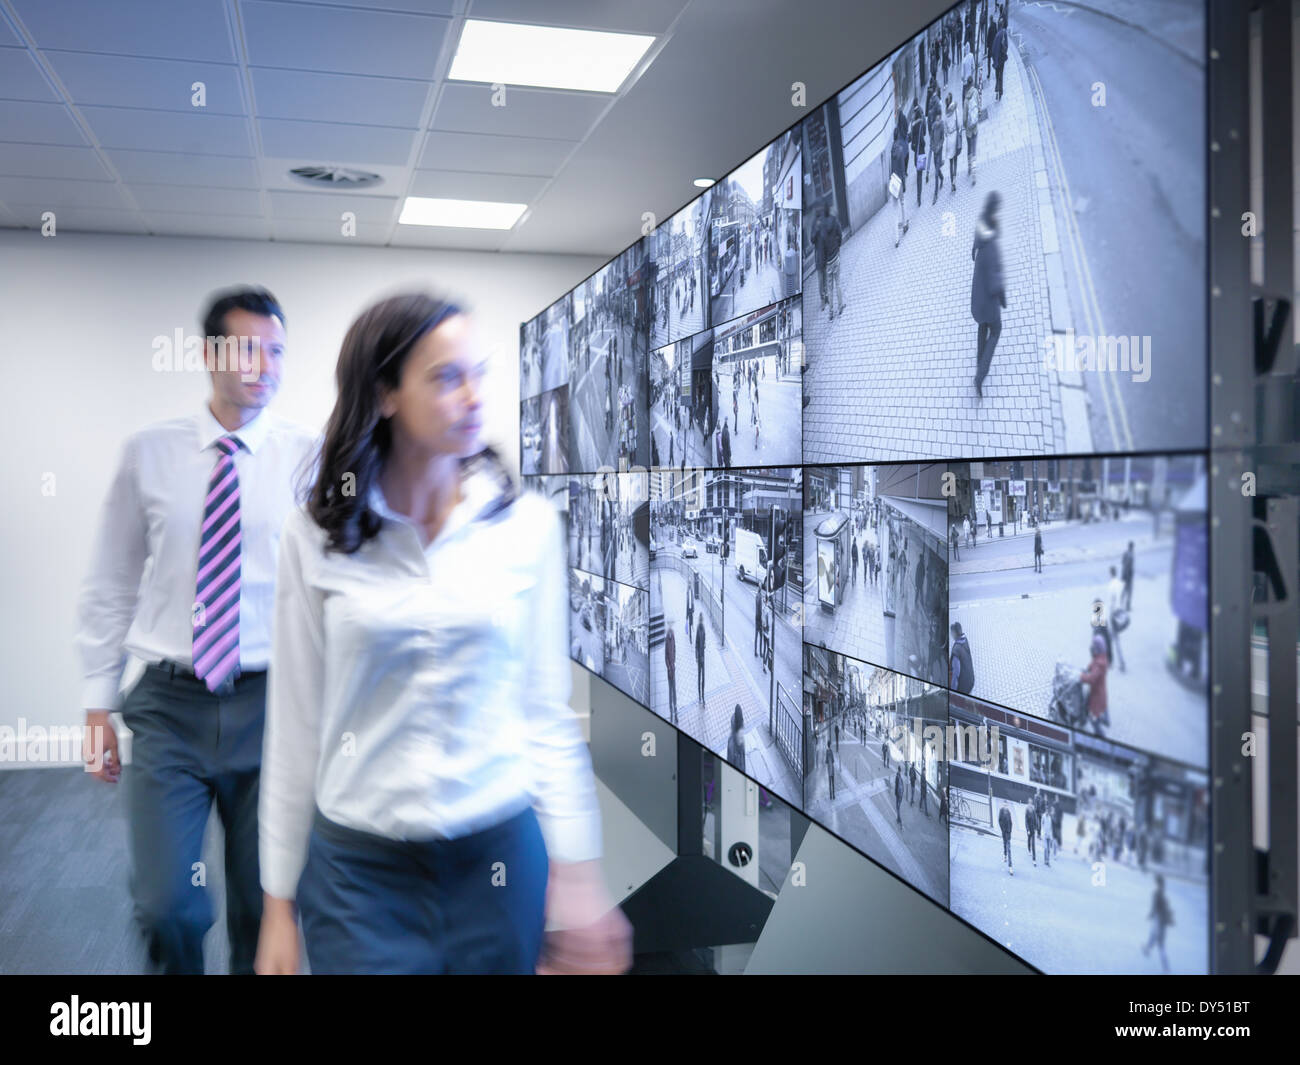 Security workers walking past CCTV screens in control room - Stock Image